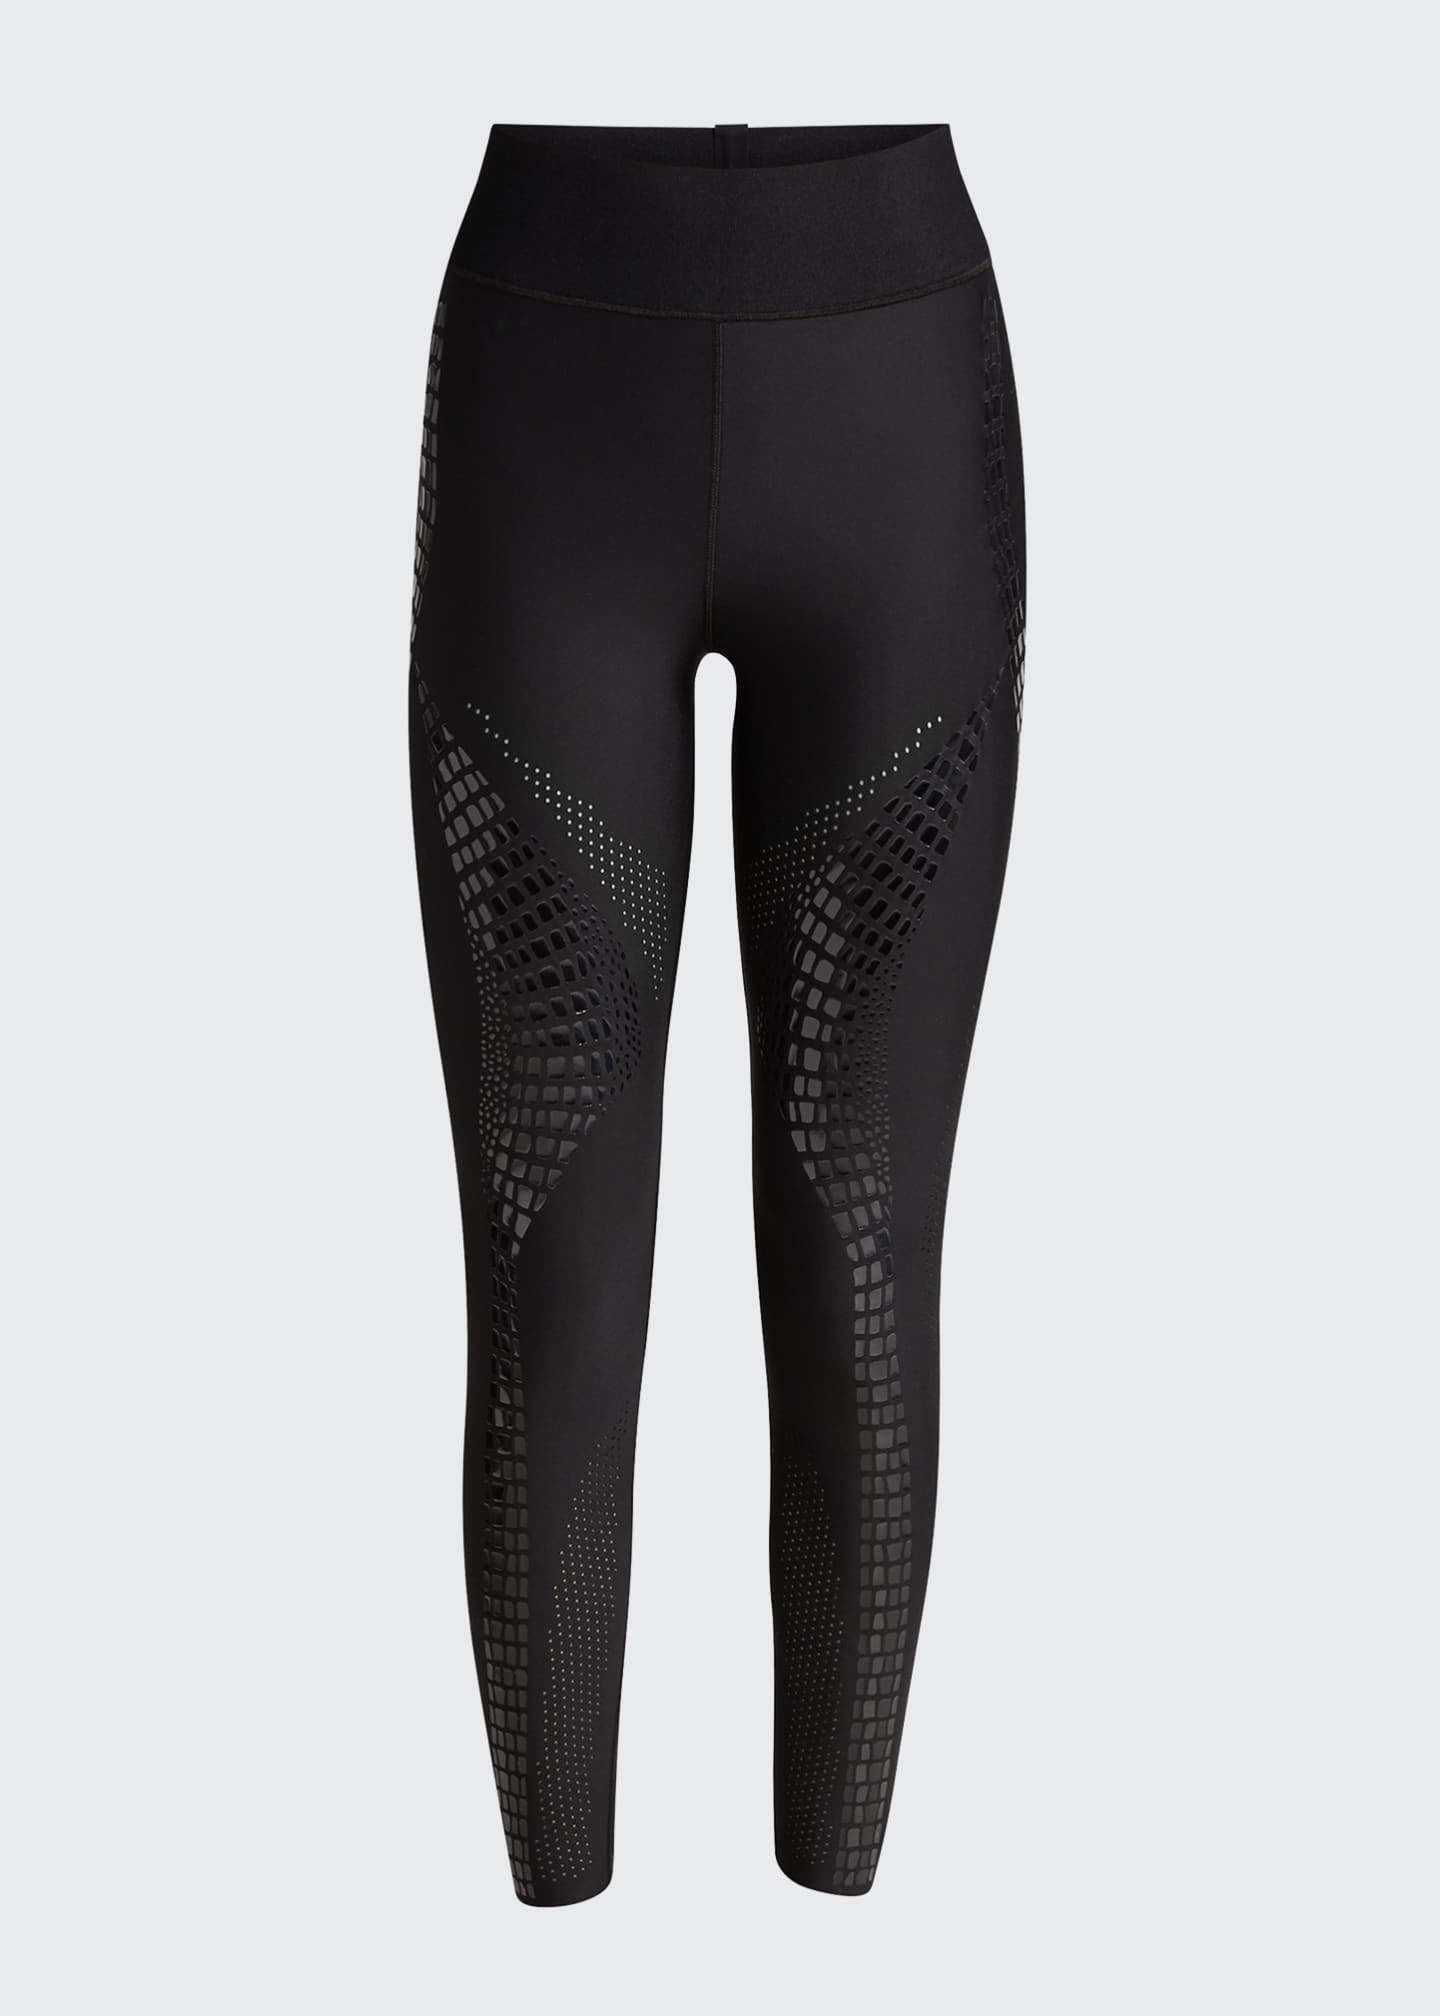 Image 5 of 5: Croc Palisades Ultra-High Leggings